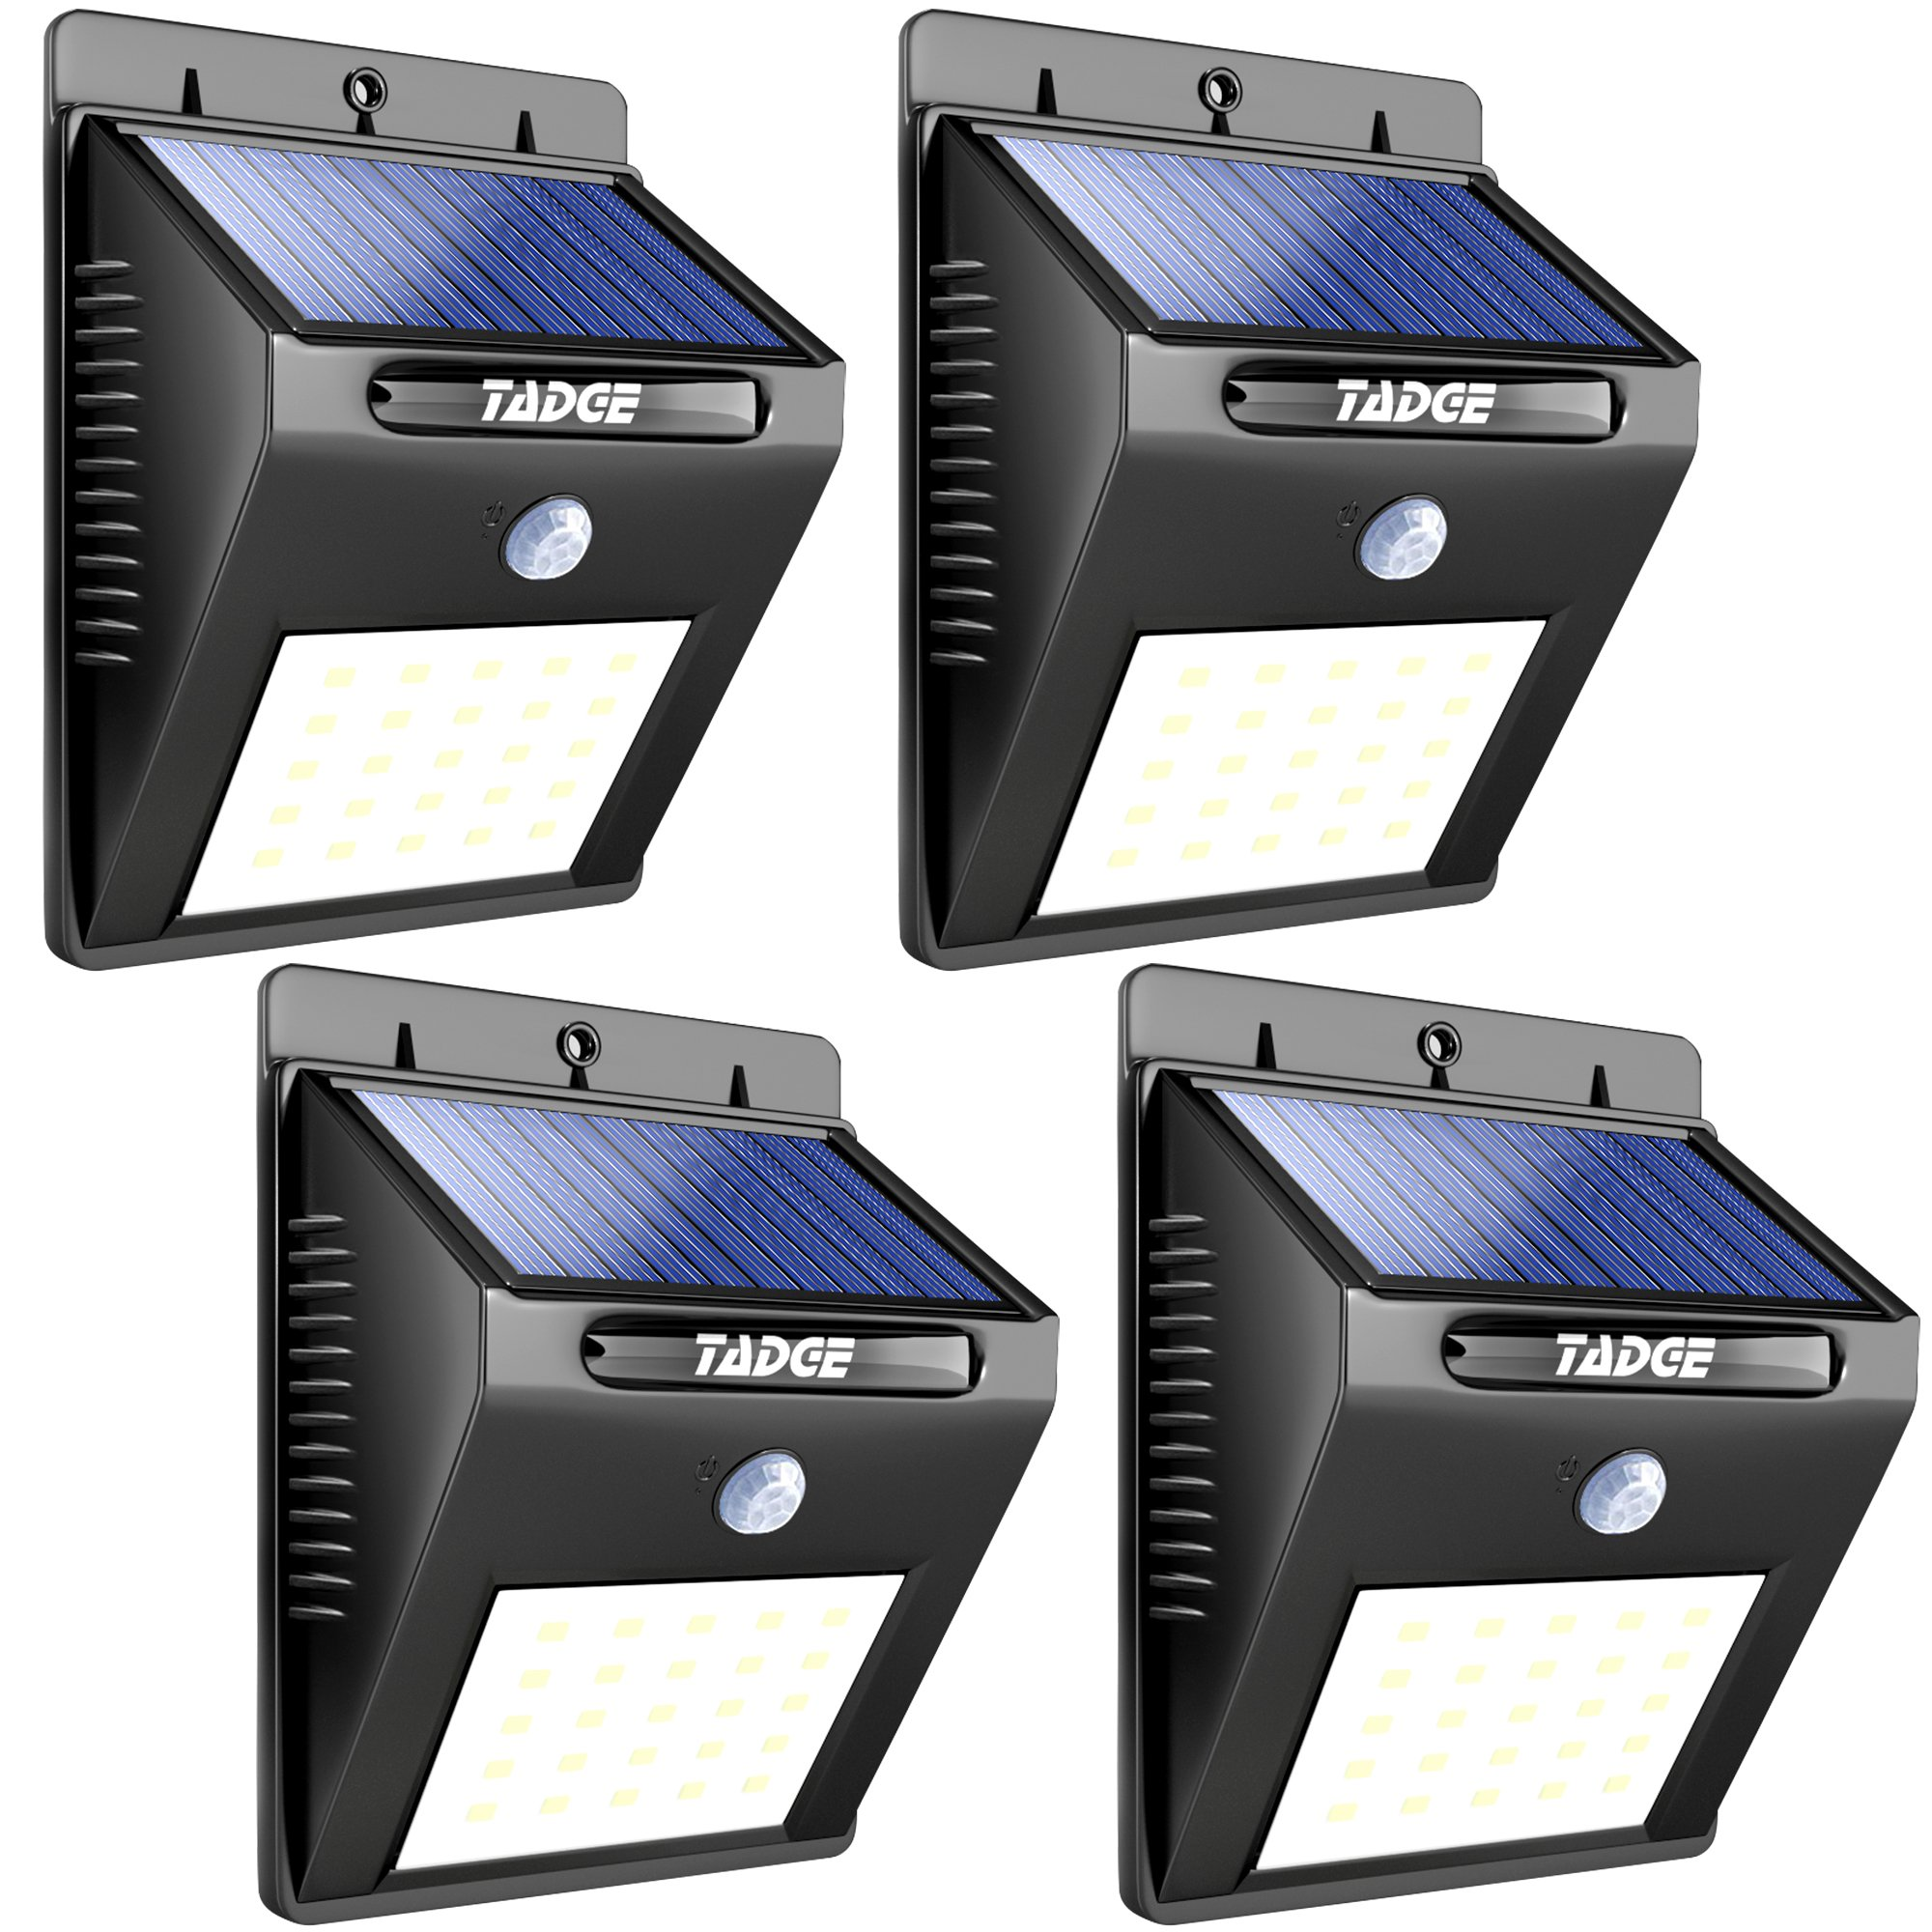 [25 LED] Solar Outdoor Patio Deck Lights – SUPER BRIGHT ...